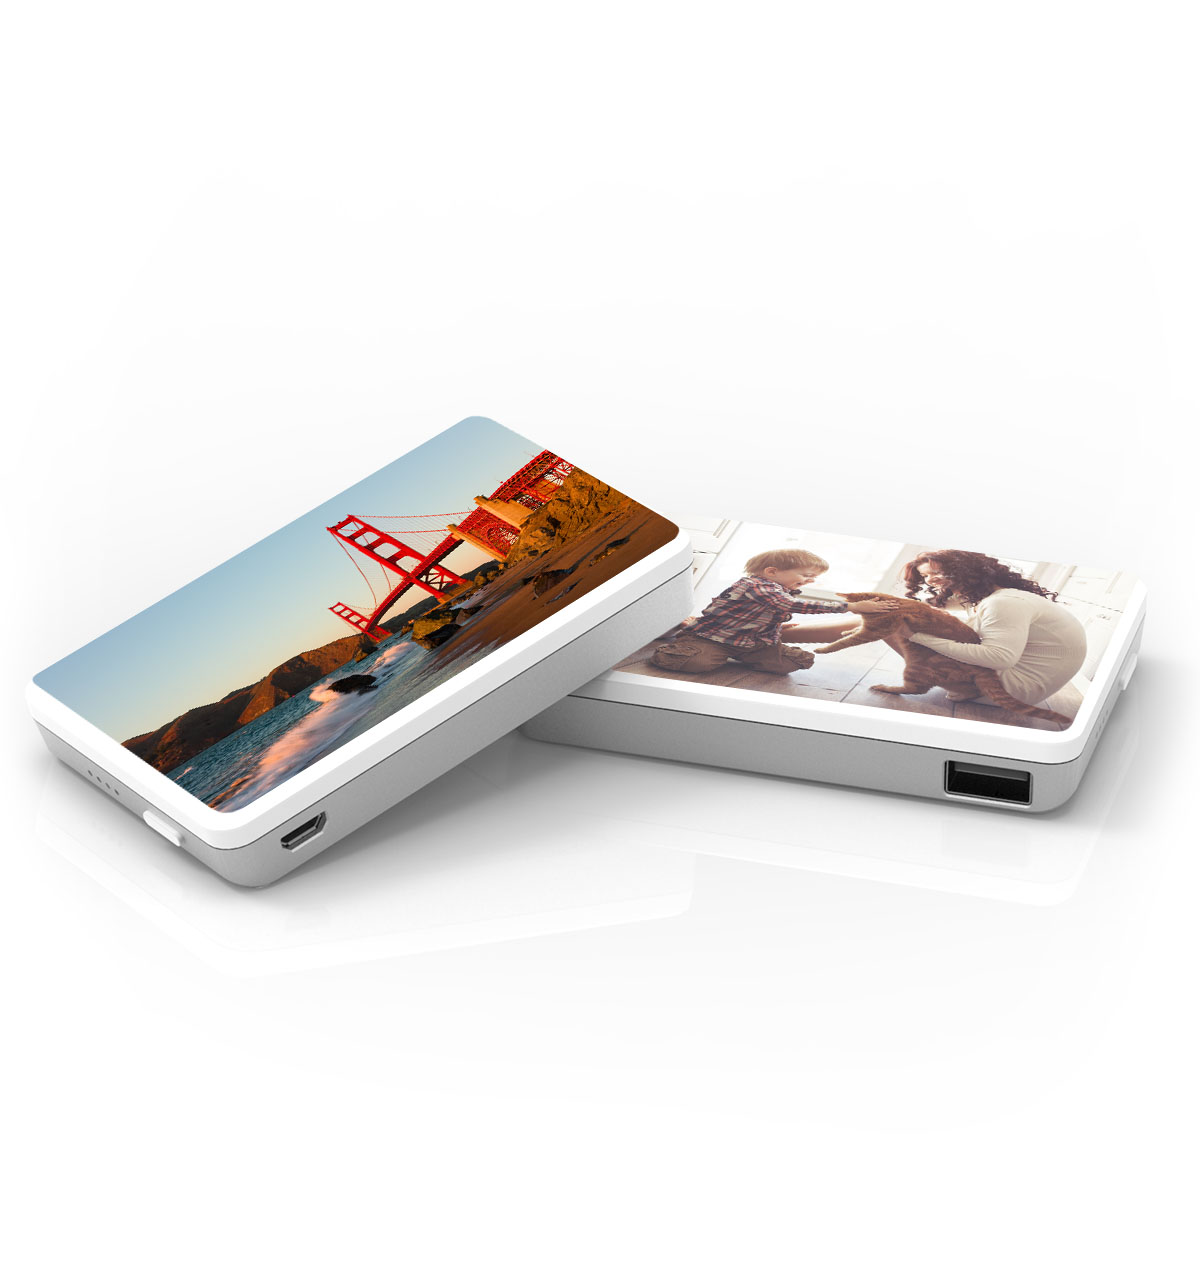 PowerStick personalized photo